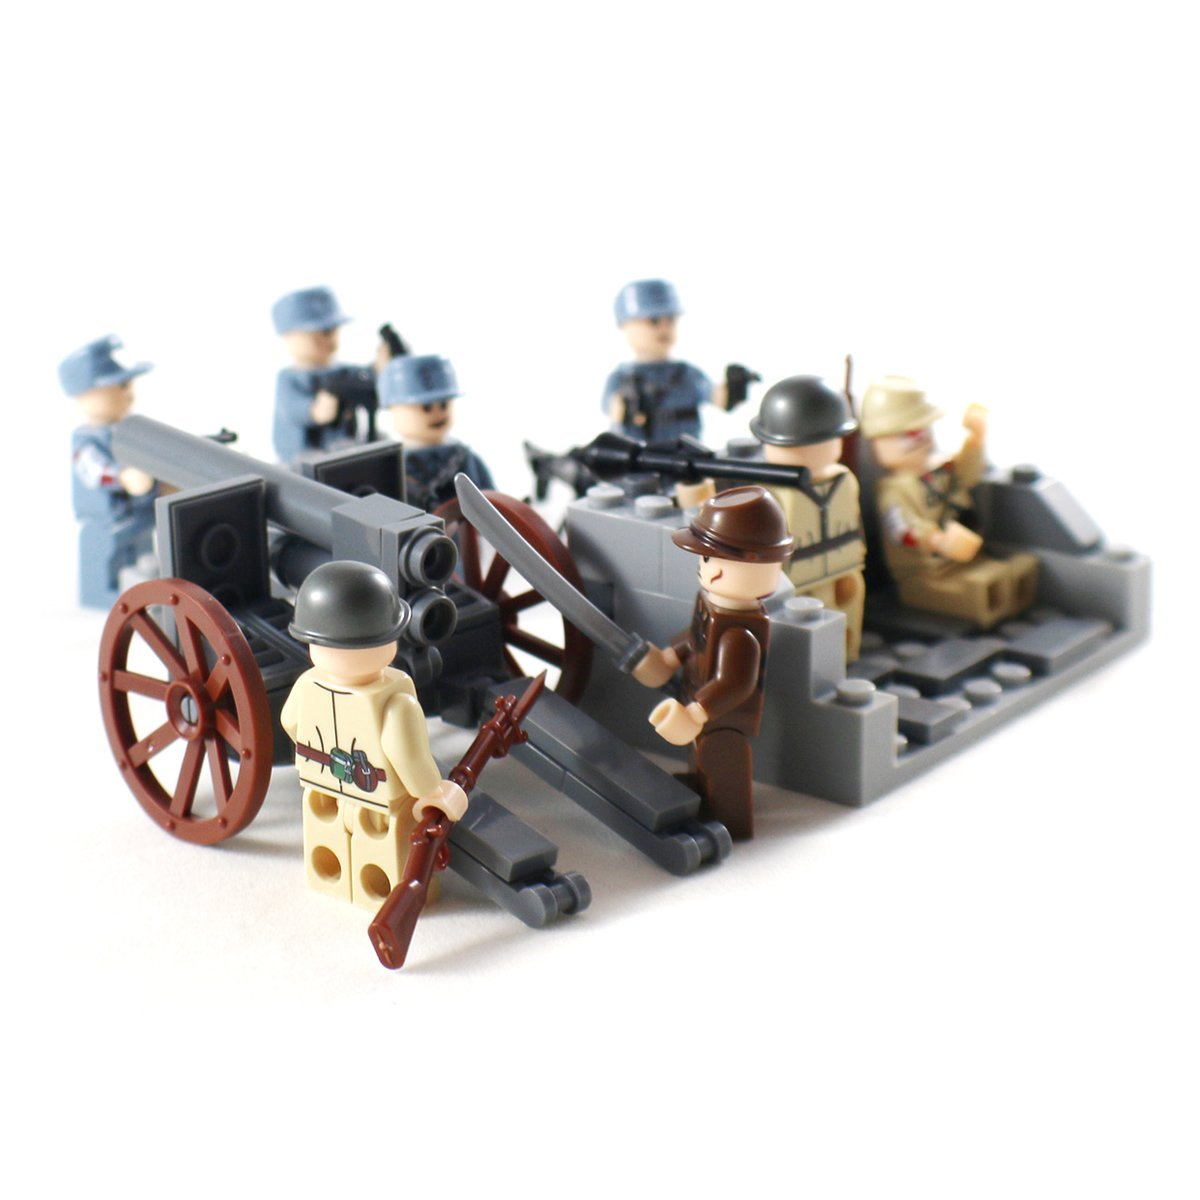 Artillery unit for buildings blocks in world war 2 series. Compatible with Lego.